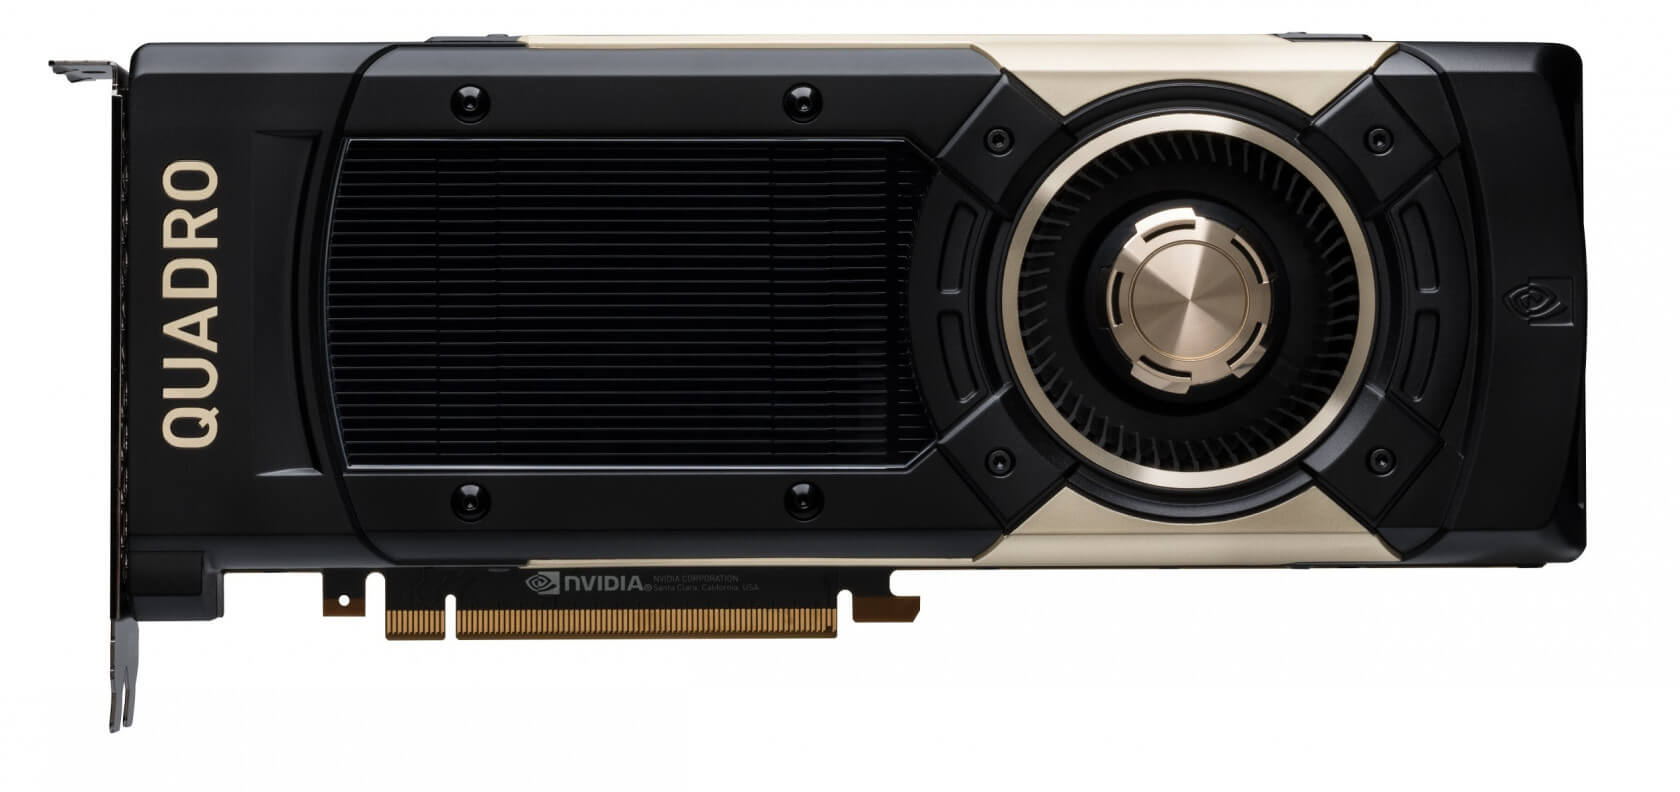 Nvidia unveils the $9,000 Quadro GV100 GPU with RTX technology